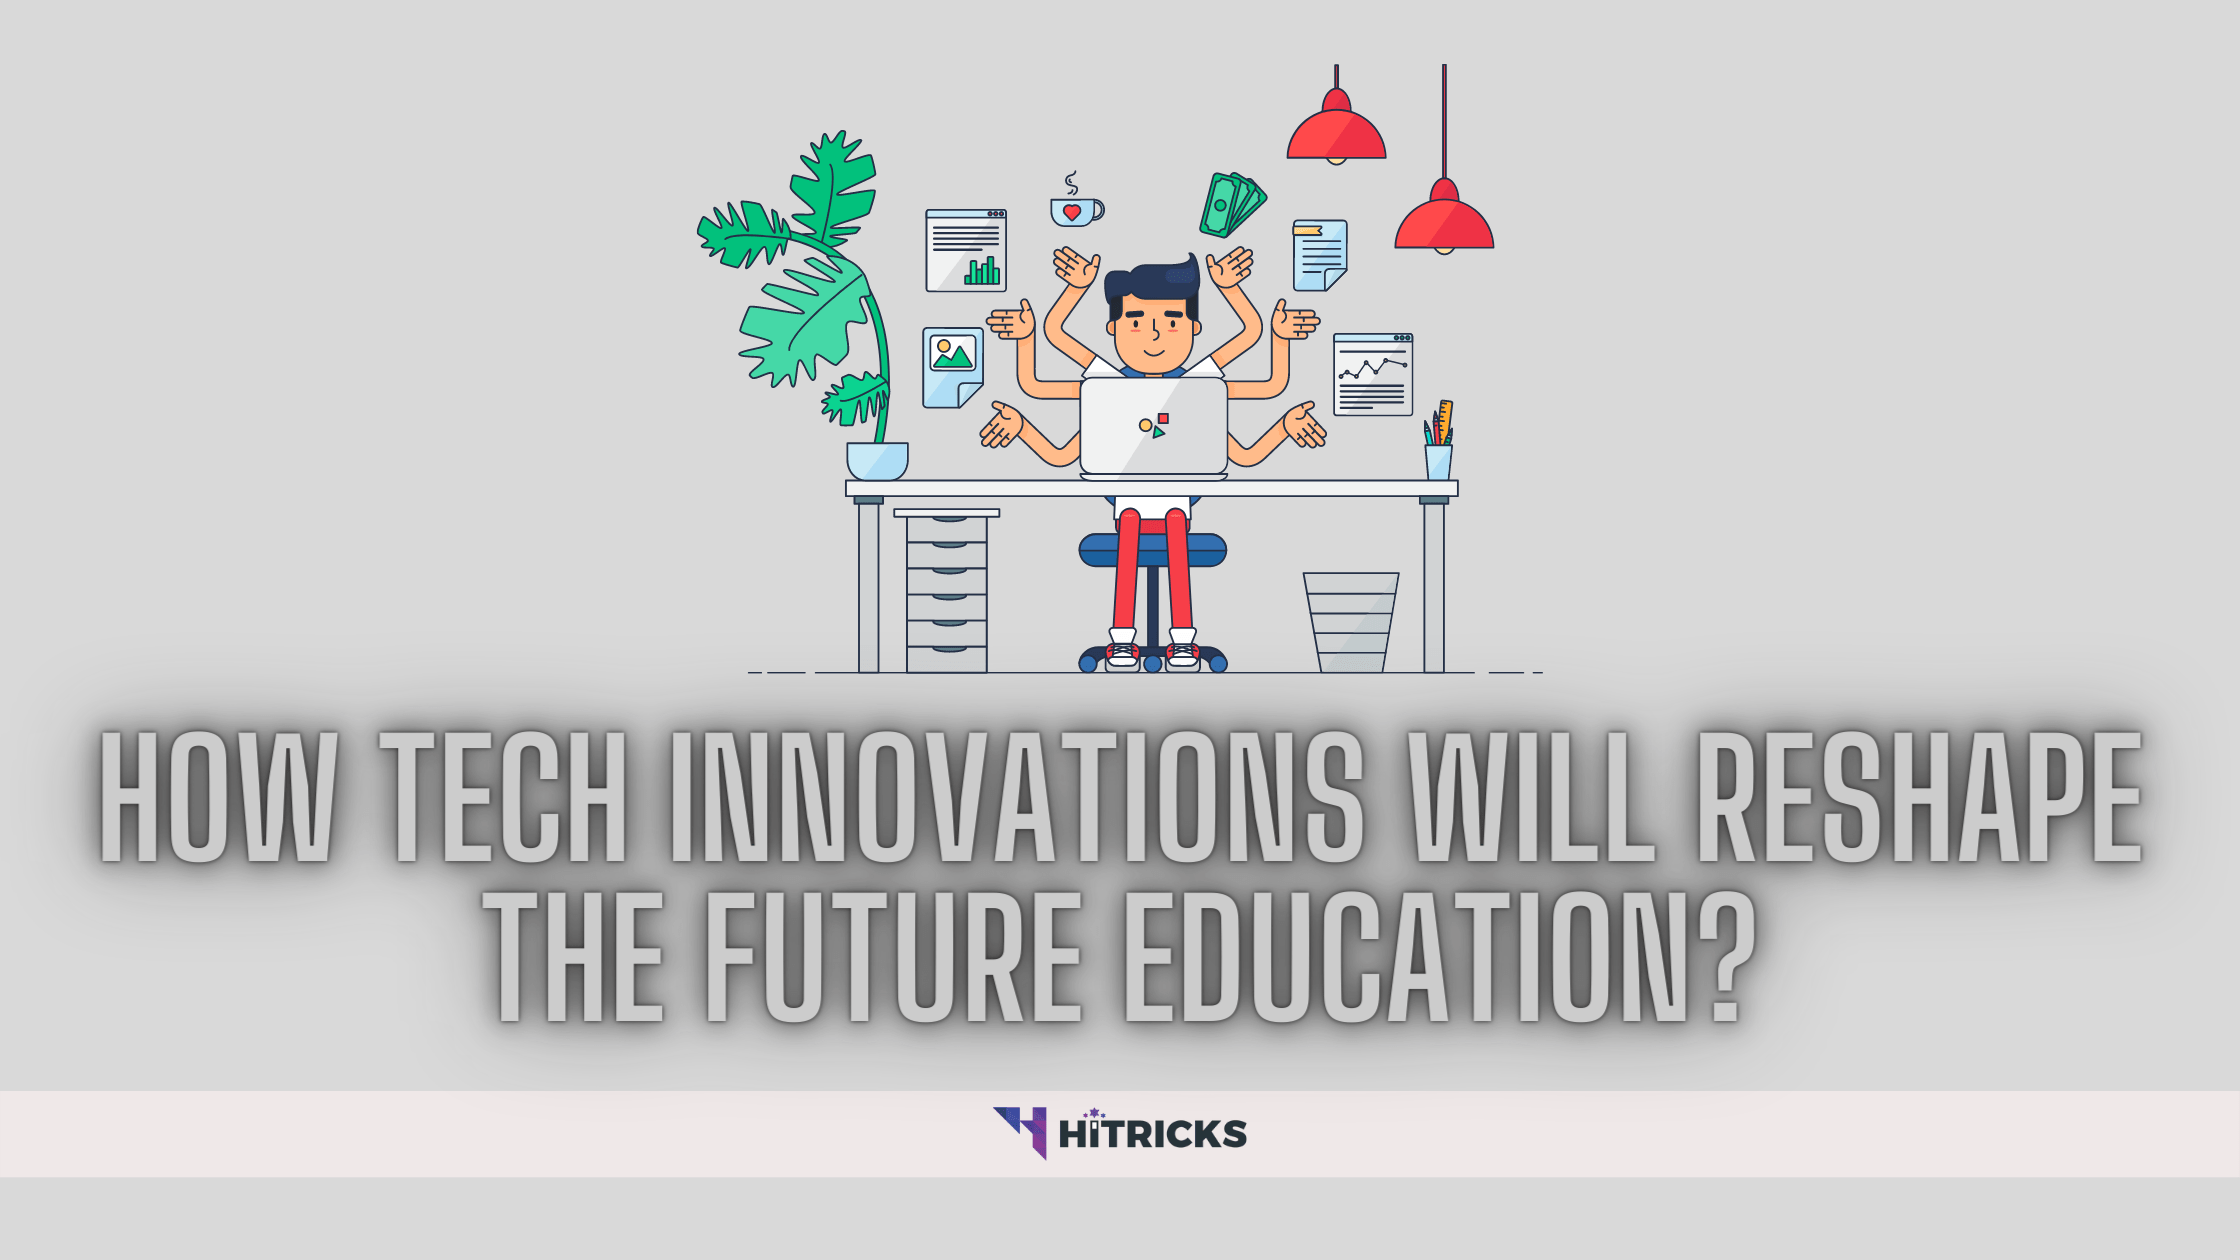 How Tech Innovations Will Reshape the Future Education?